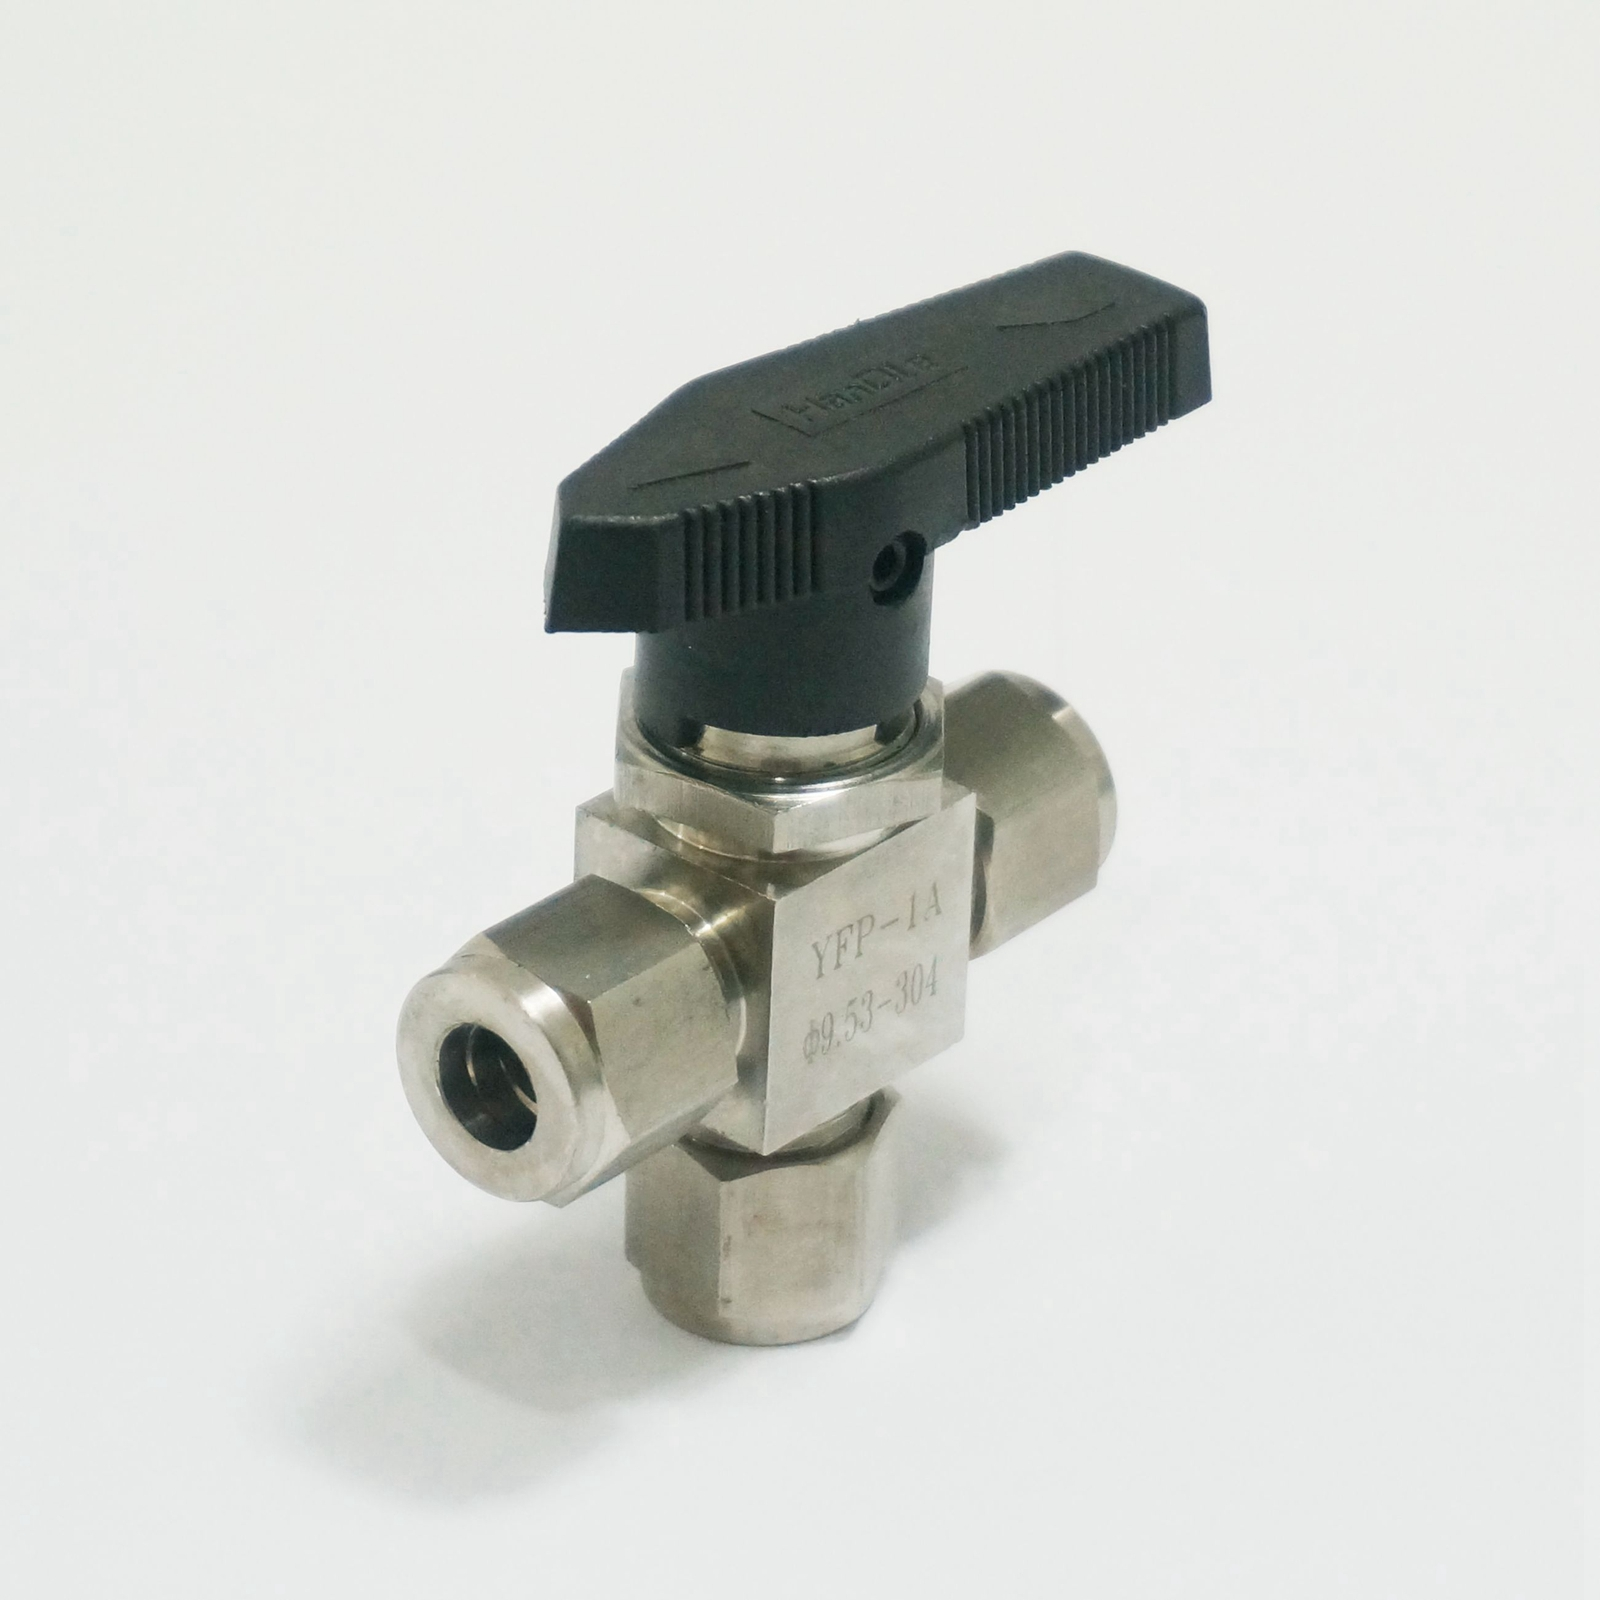 304 Stainless steel Tee 3 Ways Compression fitting shut off Ball Valve 915 PSI PN 6.4 Fit For 3/8 inch O/D Tube 1 2 bsp female 304 stainless steel flow control shut off needle valve 915 psi water gas oil